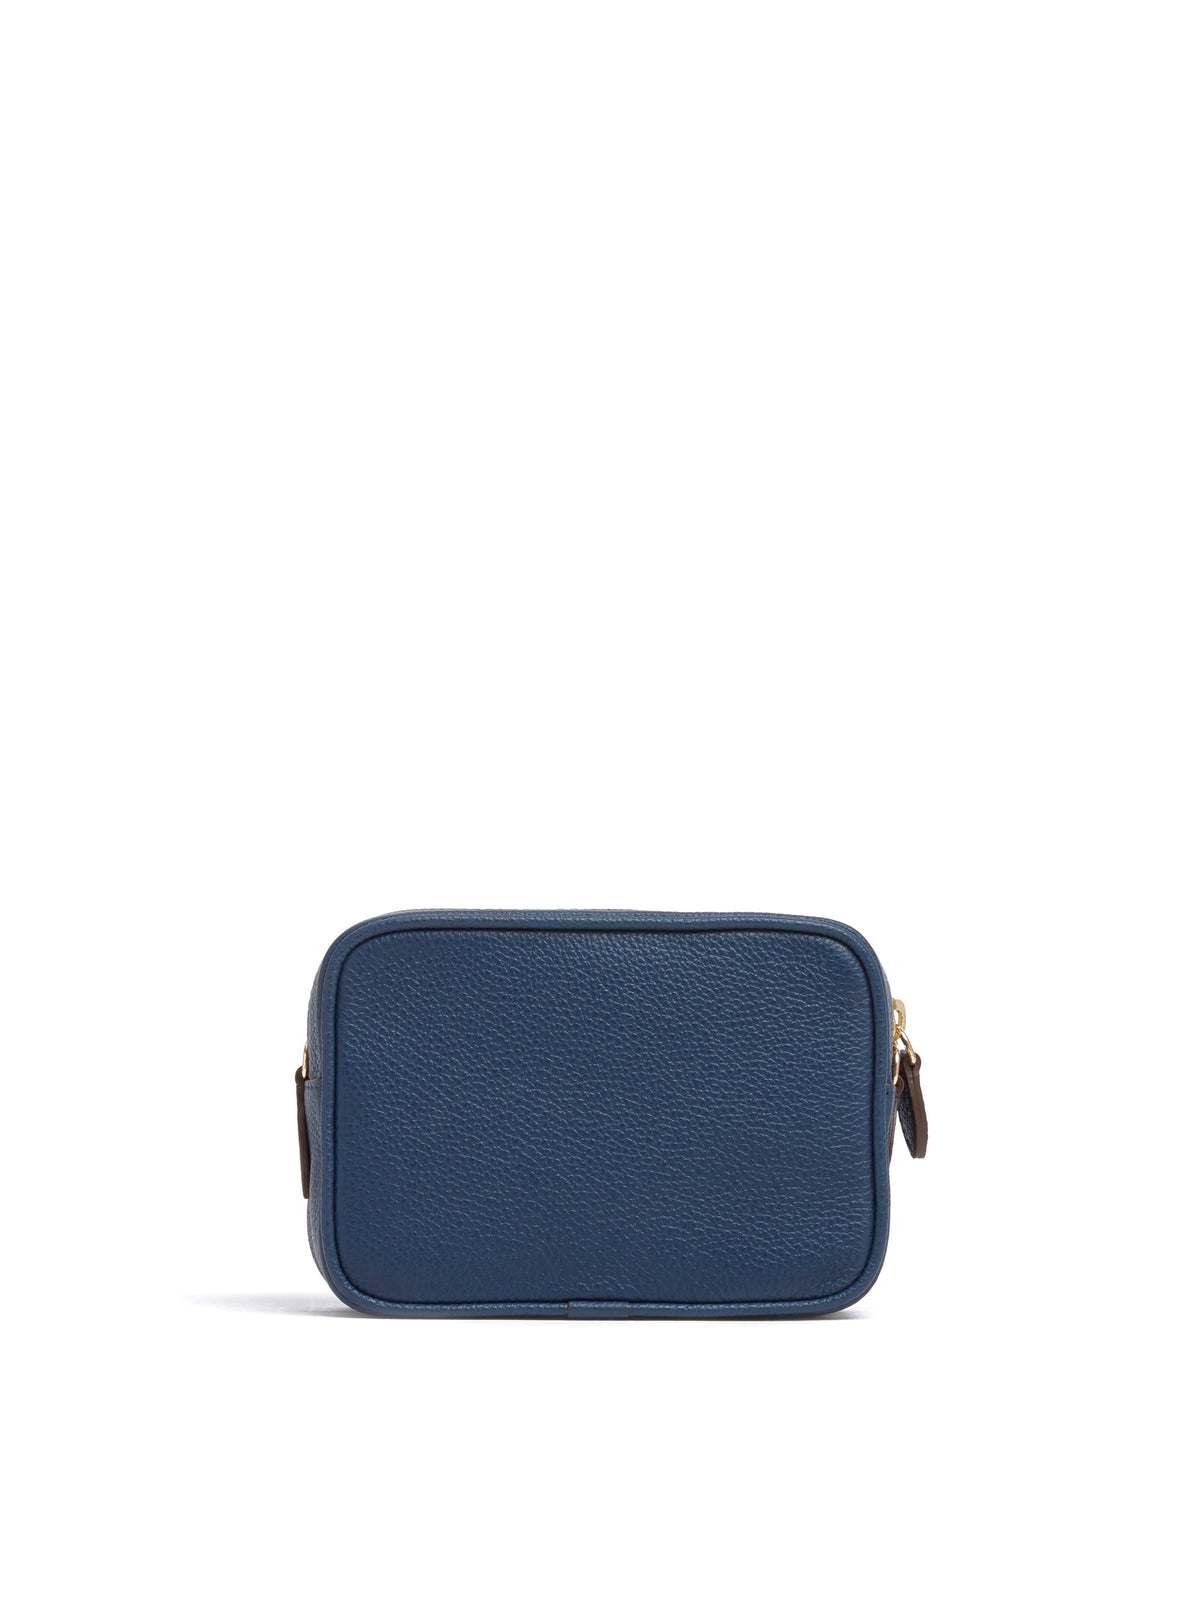 Mark Cross Leather Zip Pouch Soft Calf Navy Back